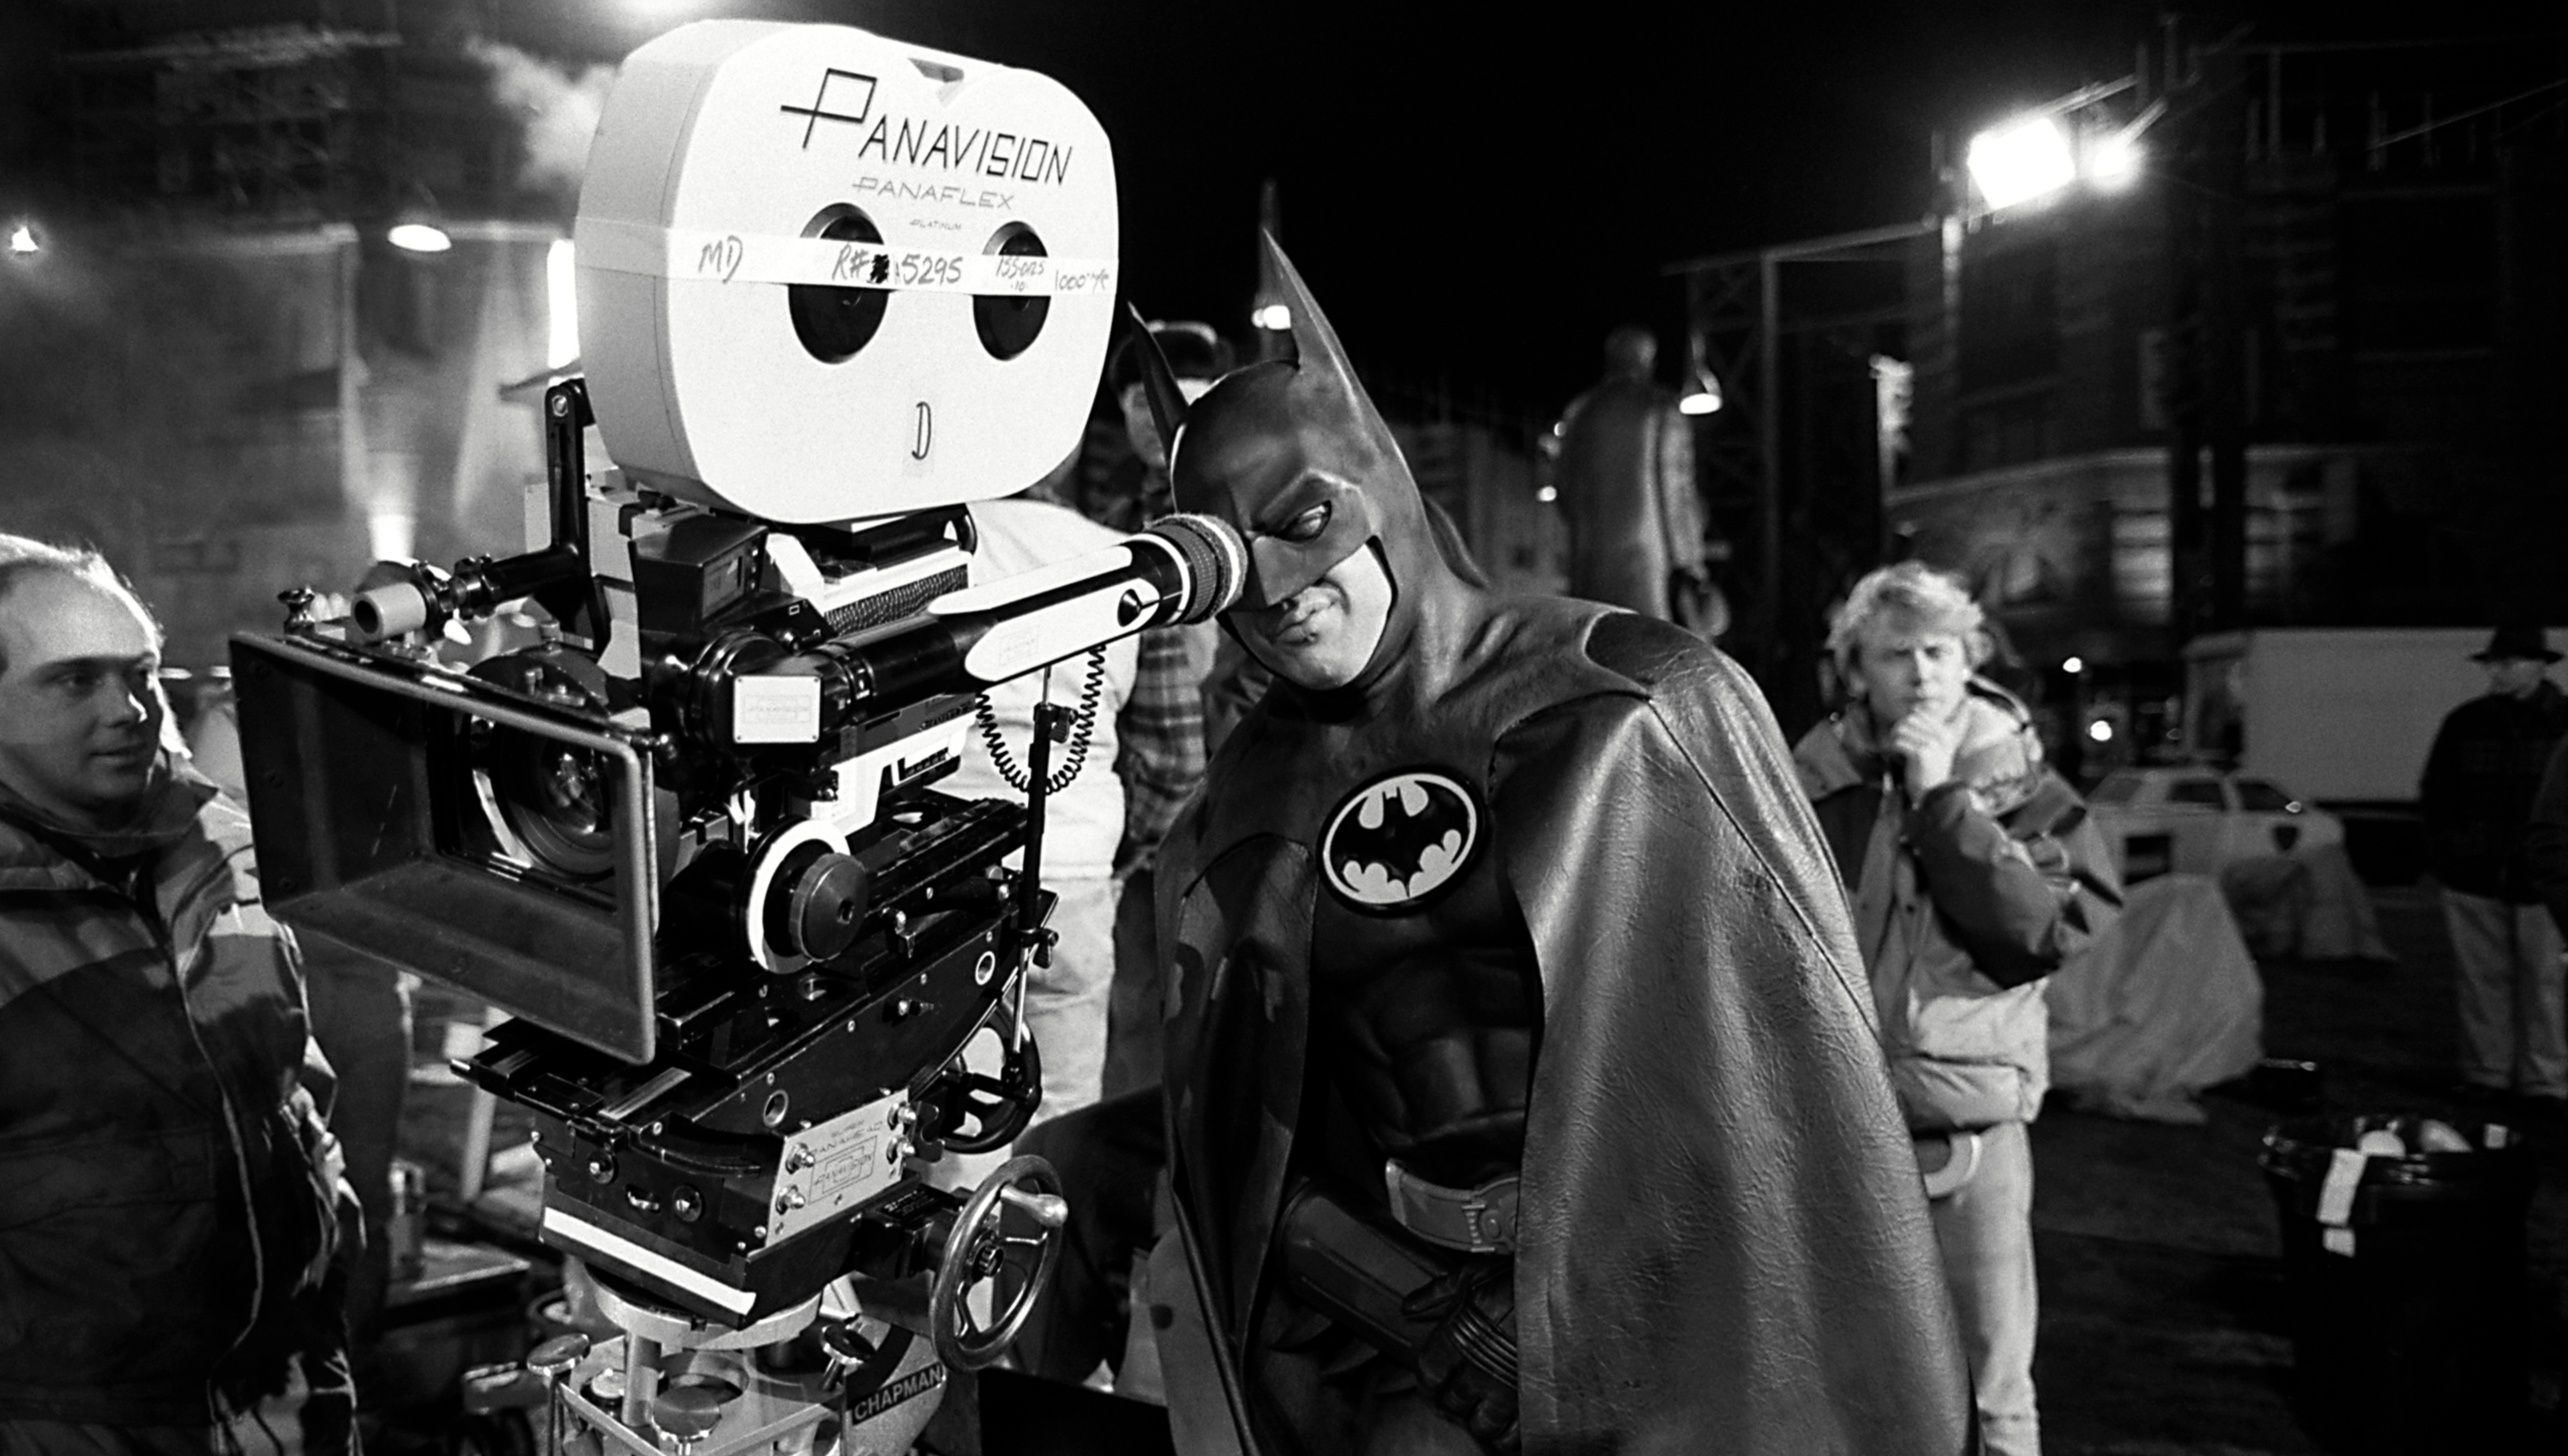 'Batman' (1989): How Tim Burton's Version of the Caped Crusader Put the Dark in Dark Knight and Gave Wings to the Superhero Movie Genre